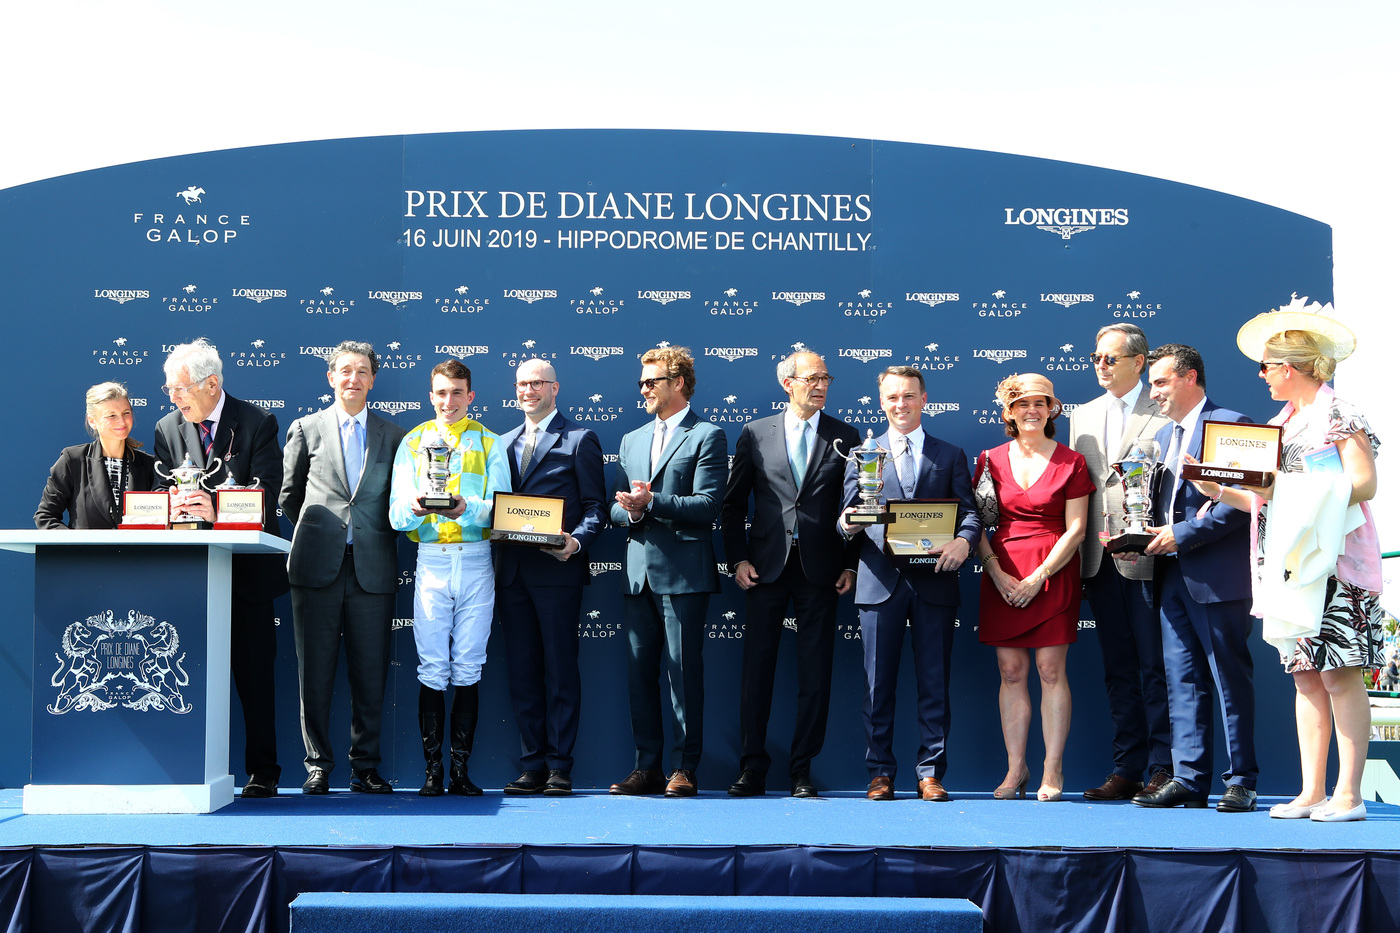 Longines Flat Racing Event: A remarkable 2019 edition of the Prix de Diane Longines in presence of Longines Ambassador of Elegance Simon Baker  6